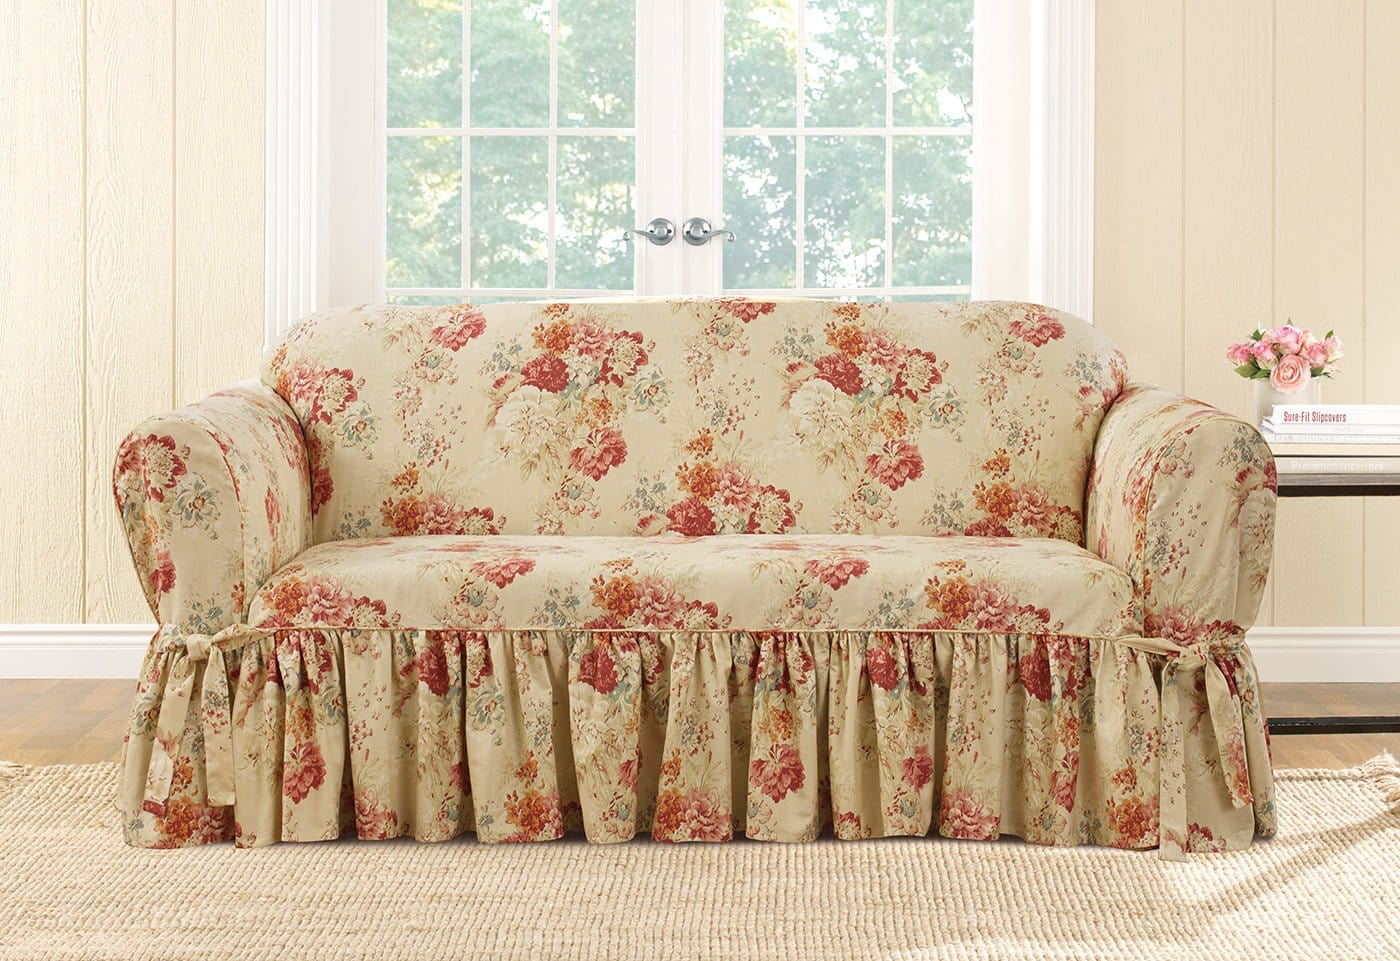 Ballad Bouquet By Waverly One Piece Loveseat Slipcover Ruffled Skirt 100% Cotton Machine Washable - Loveseat / Box Cushion / Blush